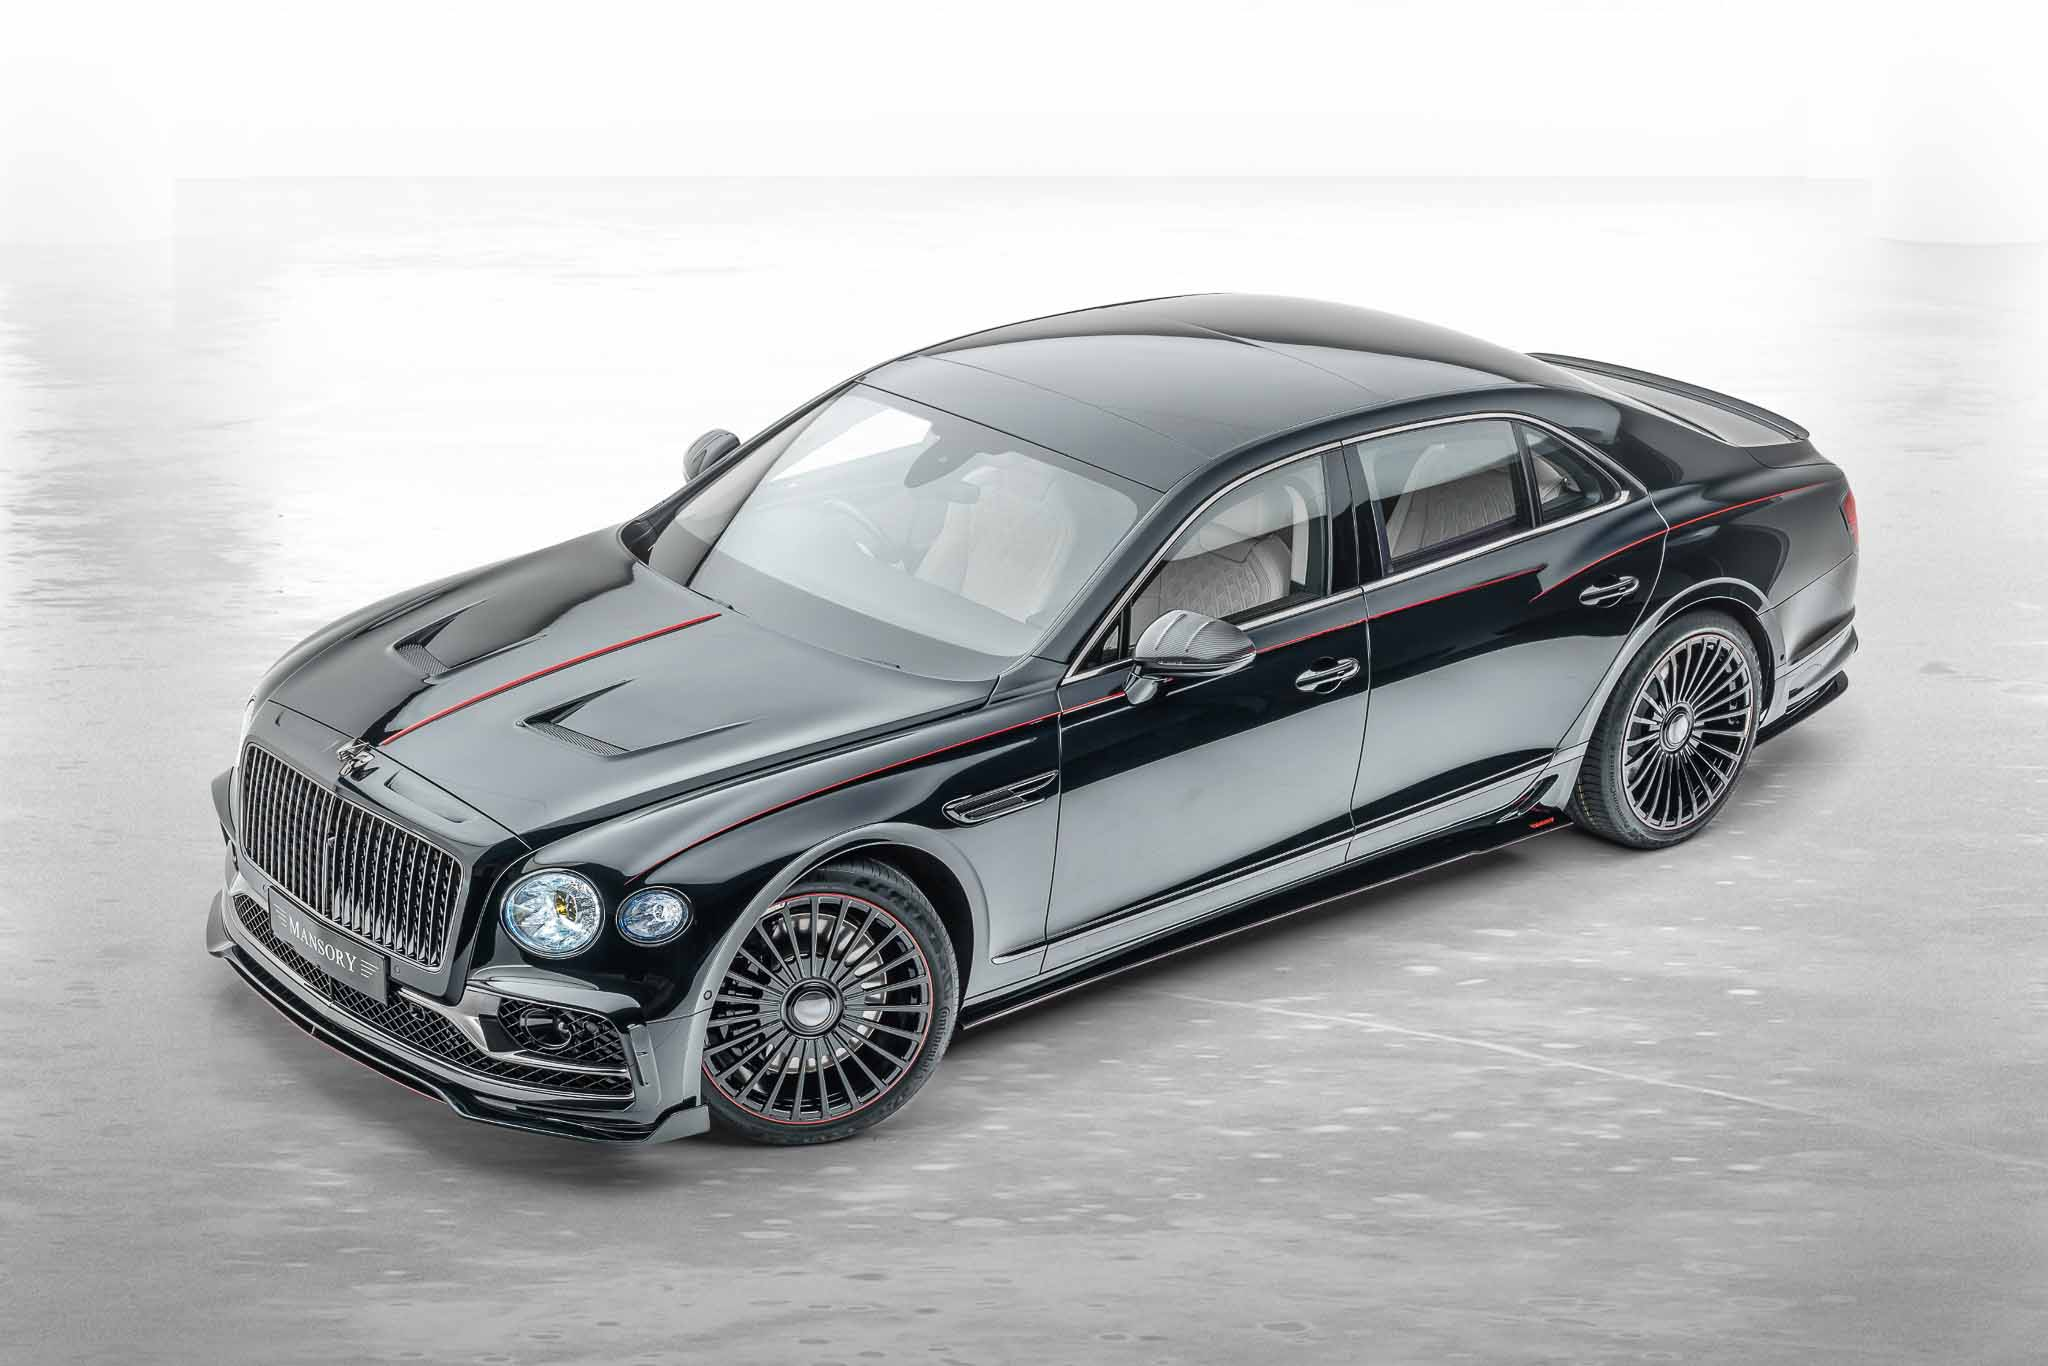 Mansory Bentley Flying Spur Pitlane Tuning Shop